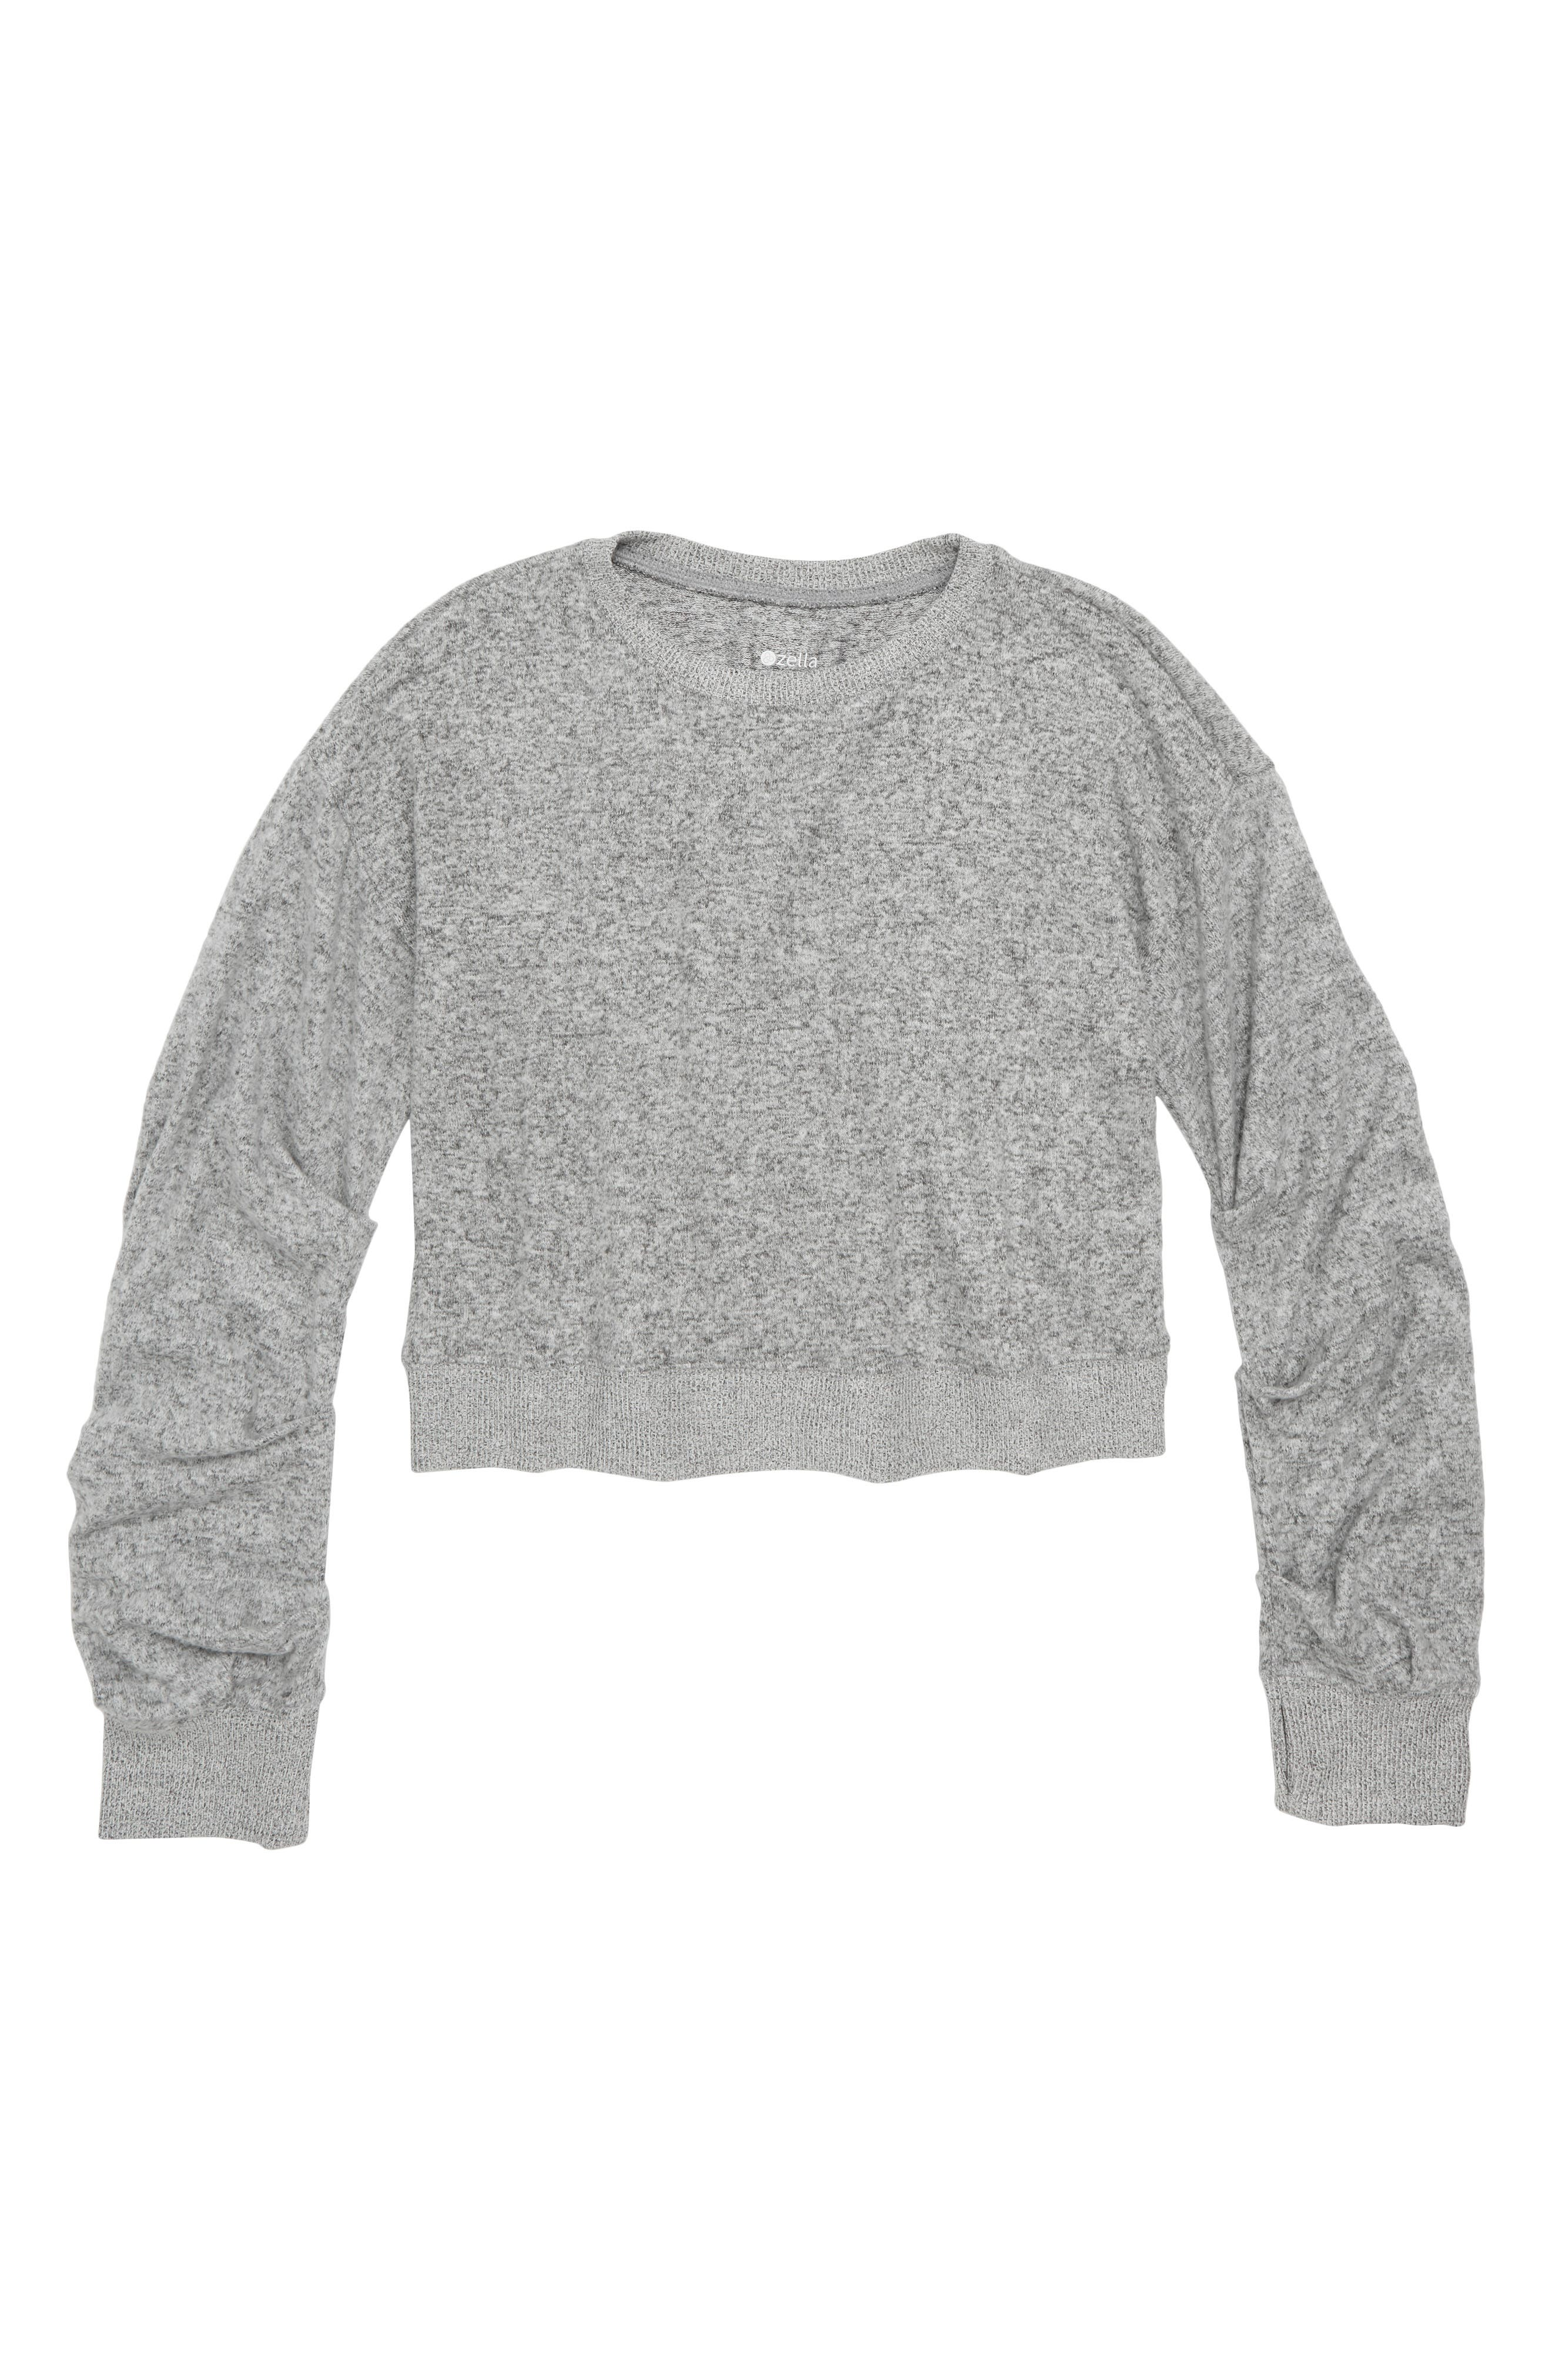 ZELLA GIRL Ruched Pullover, Main, color, GREY ASH HEATHER